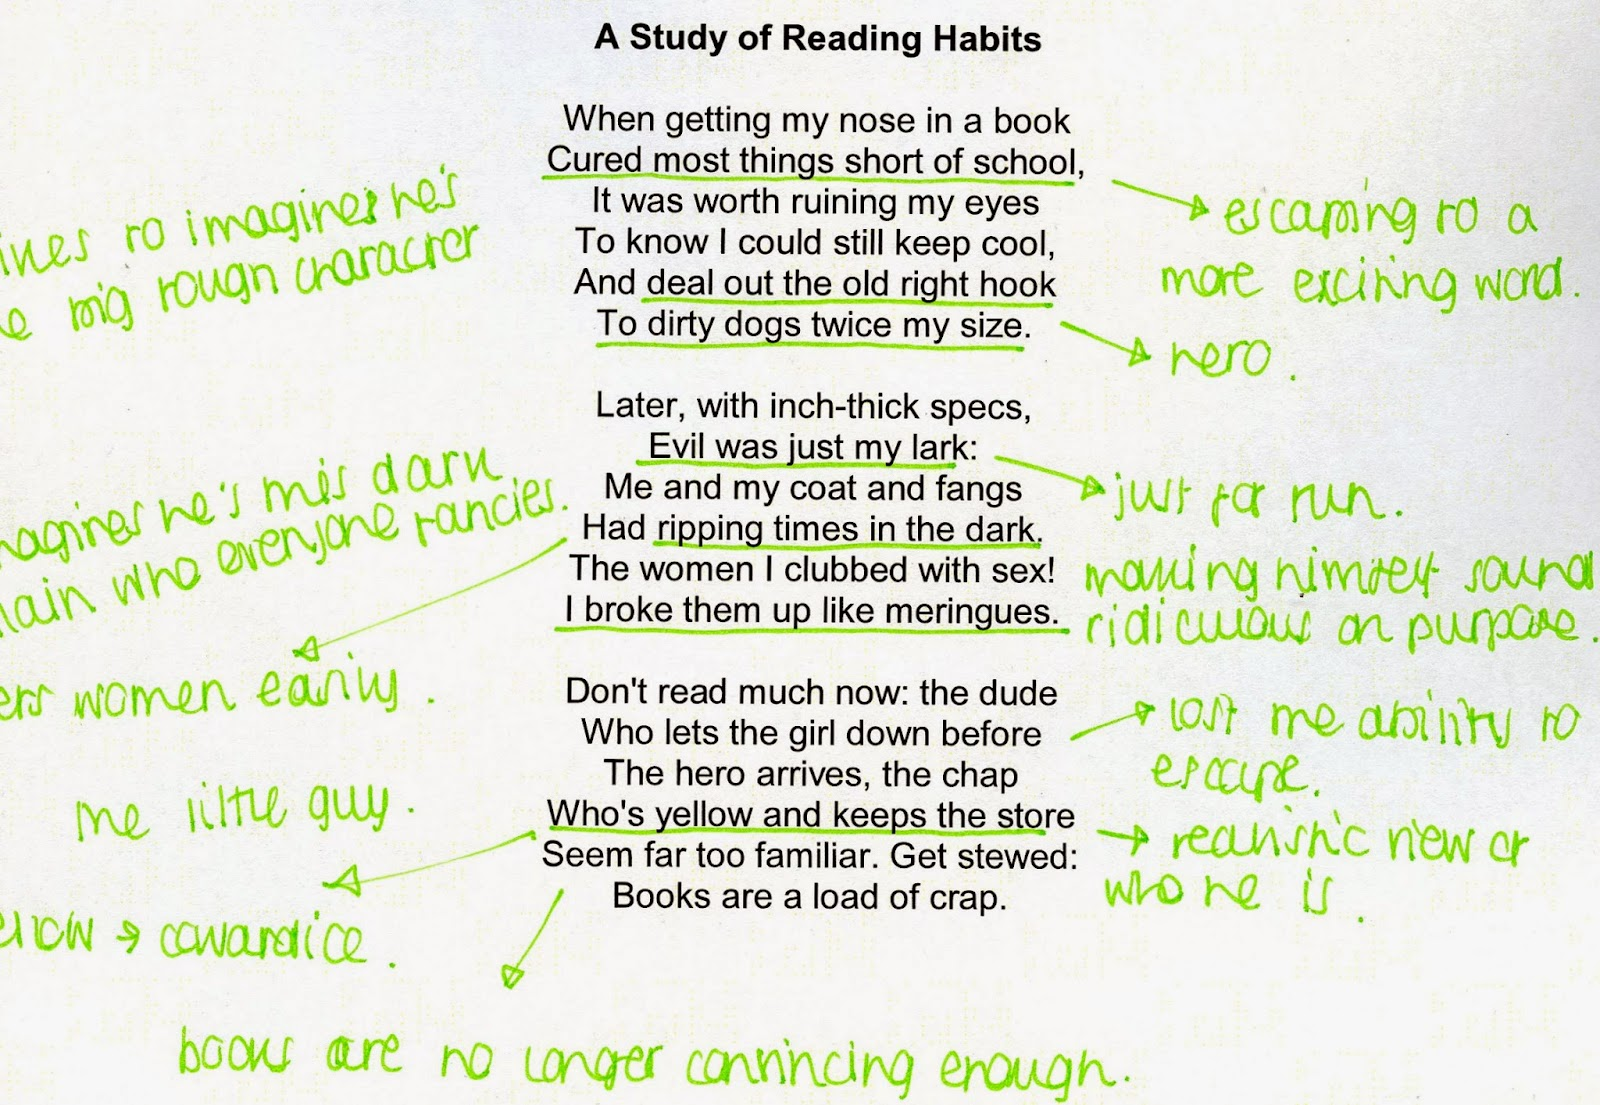 a study of reading habits analysis Reading habits among students and its effect on academic performance: a study of students of  investigation requires self-study to be followed by self-thinking and analysis self-study, otherwise referred to as reading at one's own accord, requires a habit, which is known as reading habit  good reading and study habits at present, due.